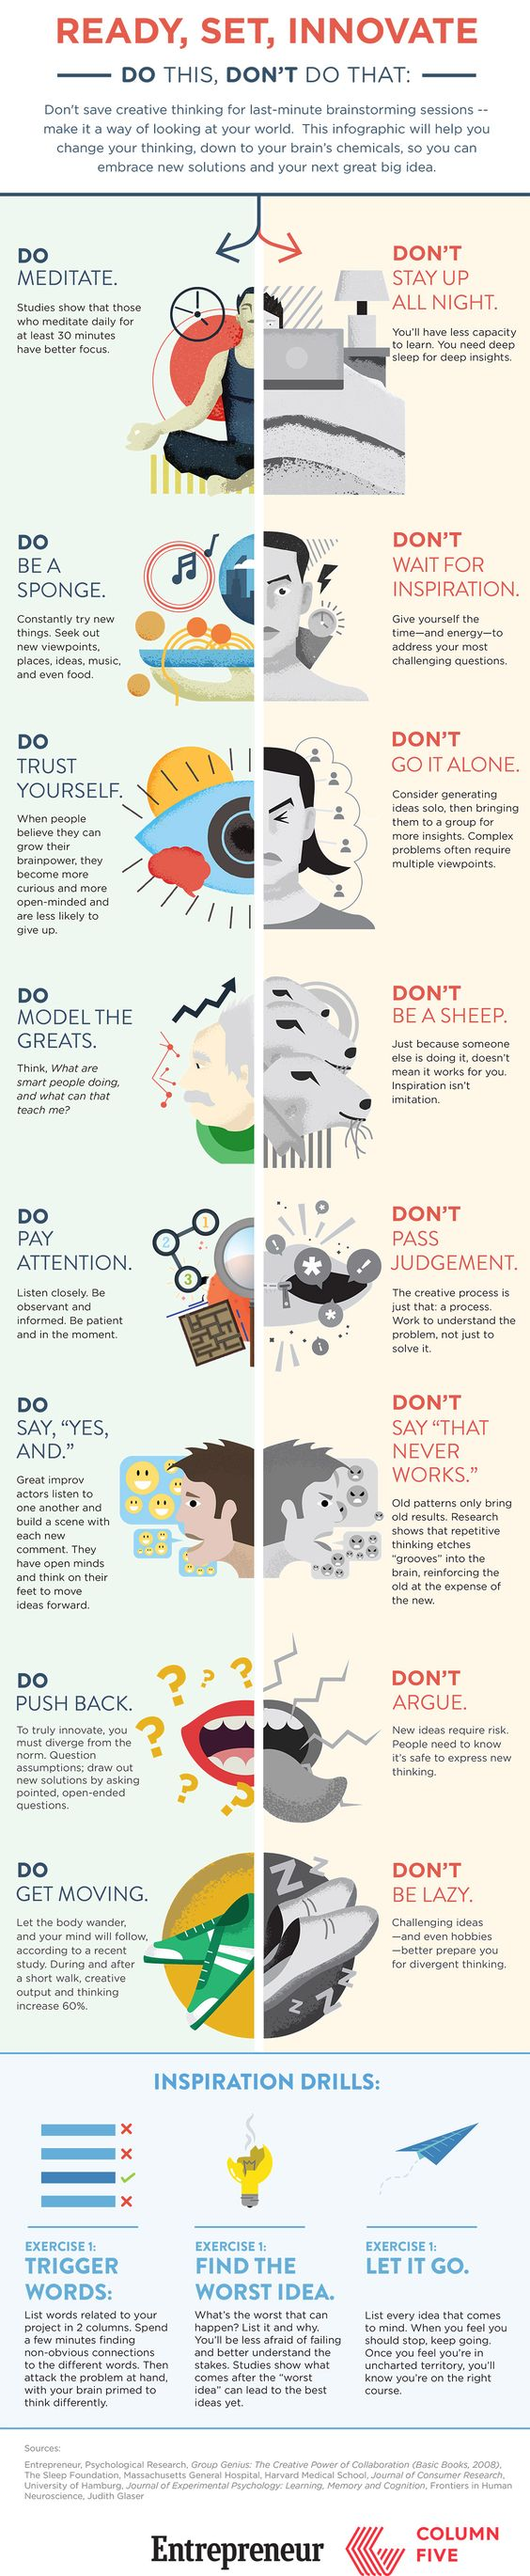 You know those days where you're just running around, and once it's time to sit down for a brainstorm session your brain just seems to freeze and nothing creative comes out? This infographic by entrepeneur.com offers some great do's and don'ts on how to improve your creativity. The do's are awesome: they encourage you to be aware of your surroundings and explore the world. So you're not only getting tips on how to improve your creativity but also on how to live consciously!